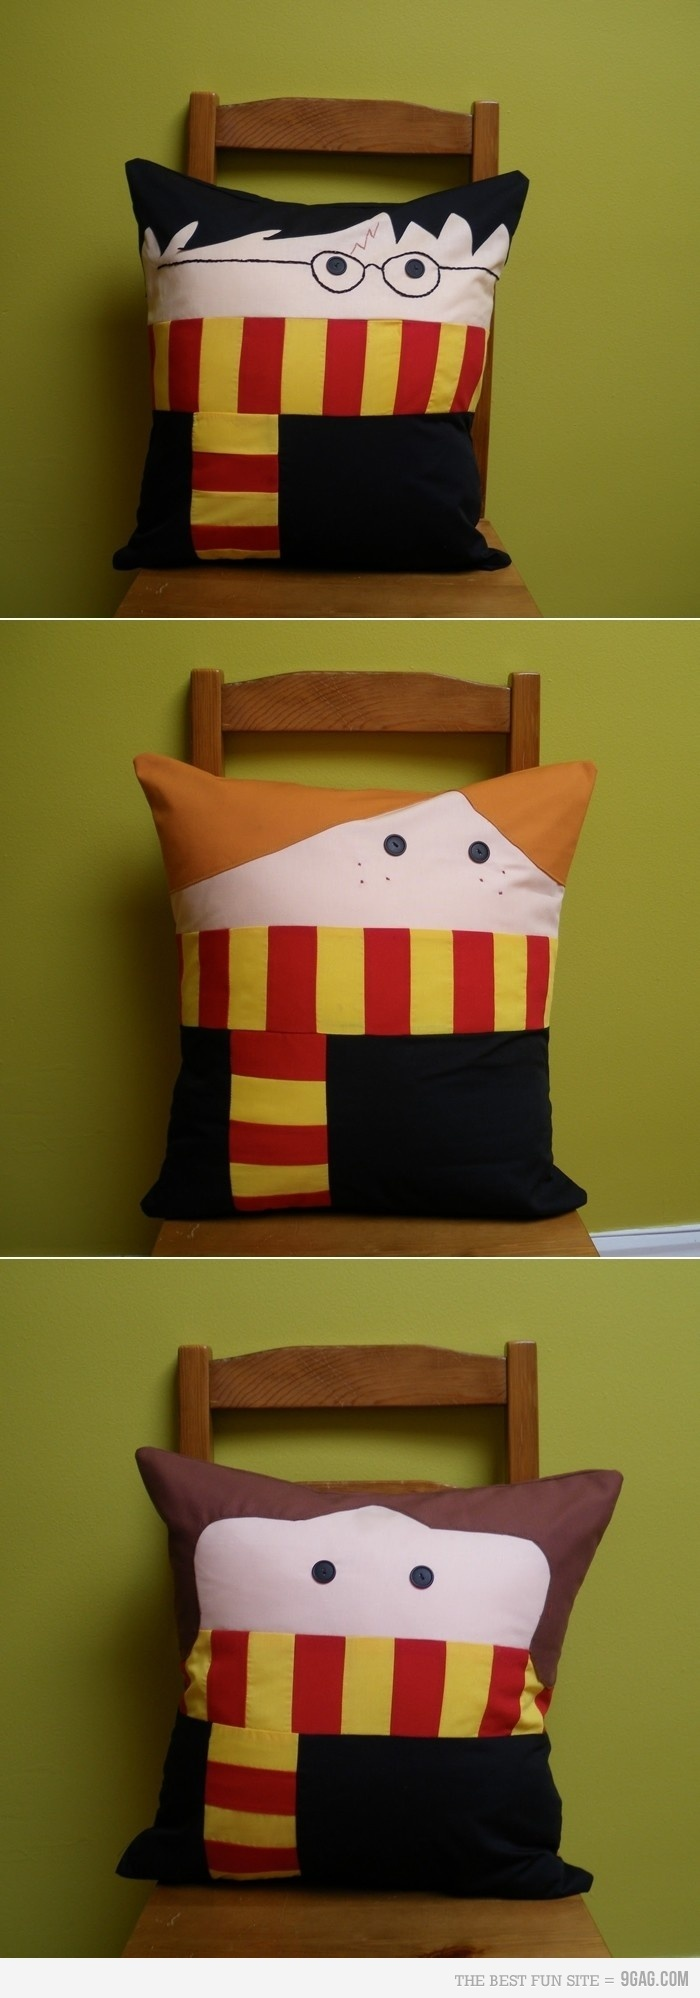 Griffindor! Harry Potter pillows for Ron, Hermione and of course, Harry.  #pilows #griffindor #harrypotter #ronweasly #hermionegranger